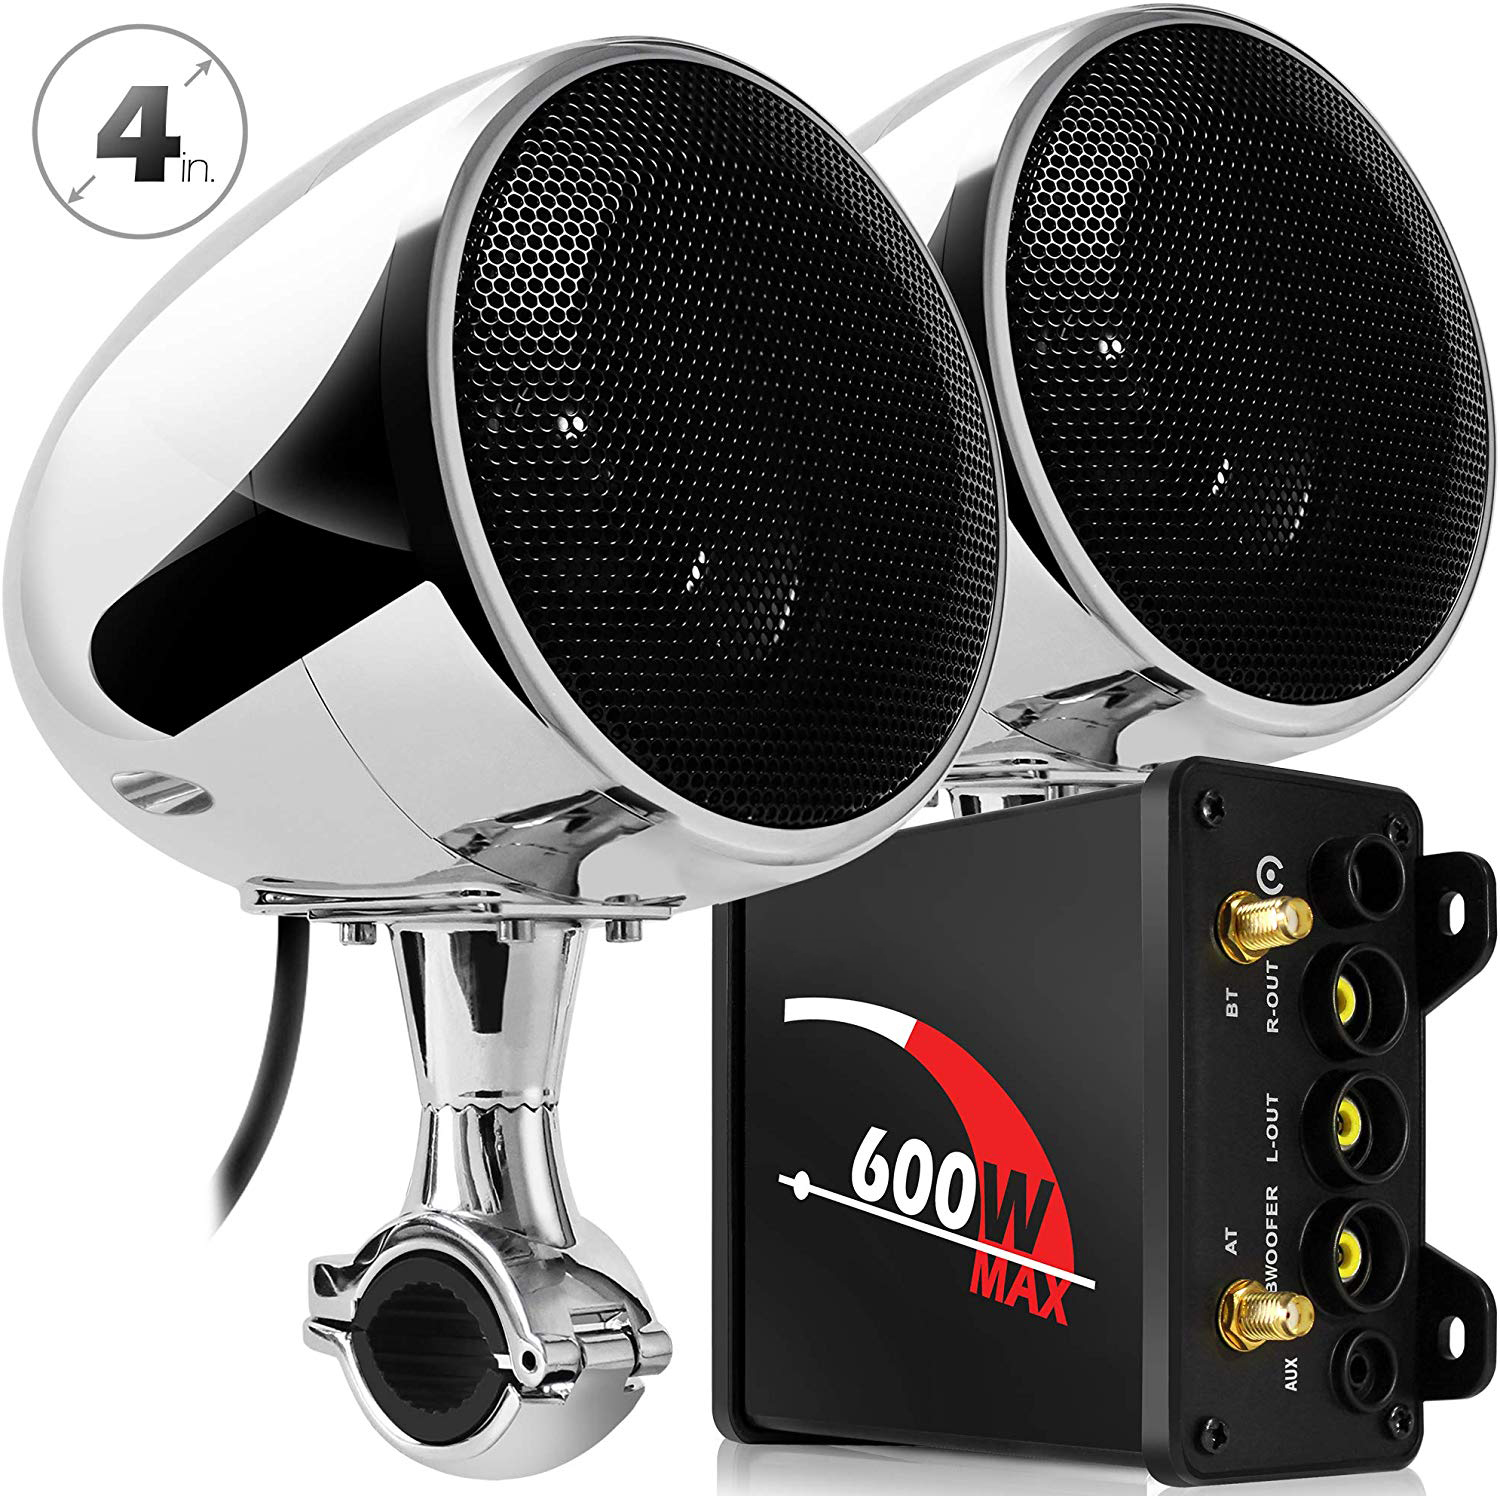 Aileap M600N Motorcycle Audio System with 600W Subwoofer Amplifier and Two Stereo Speakers Support Bluetooth FM Radio AUX MP3